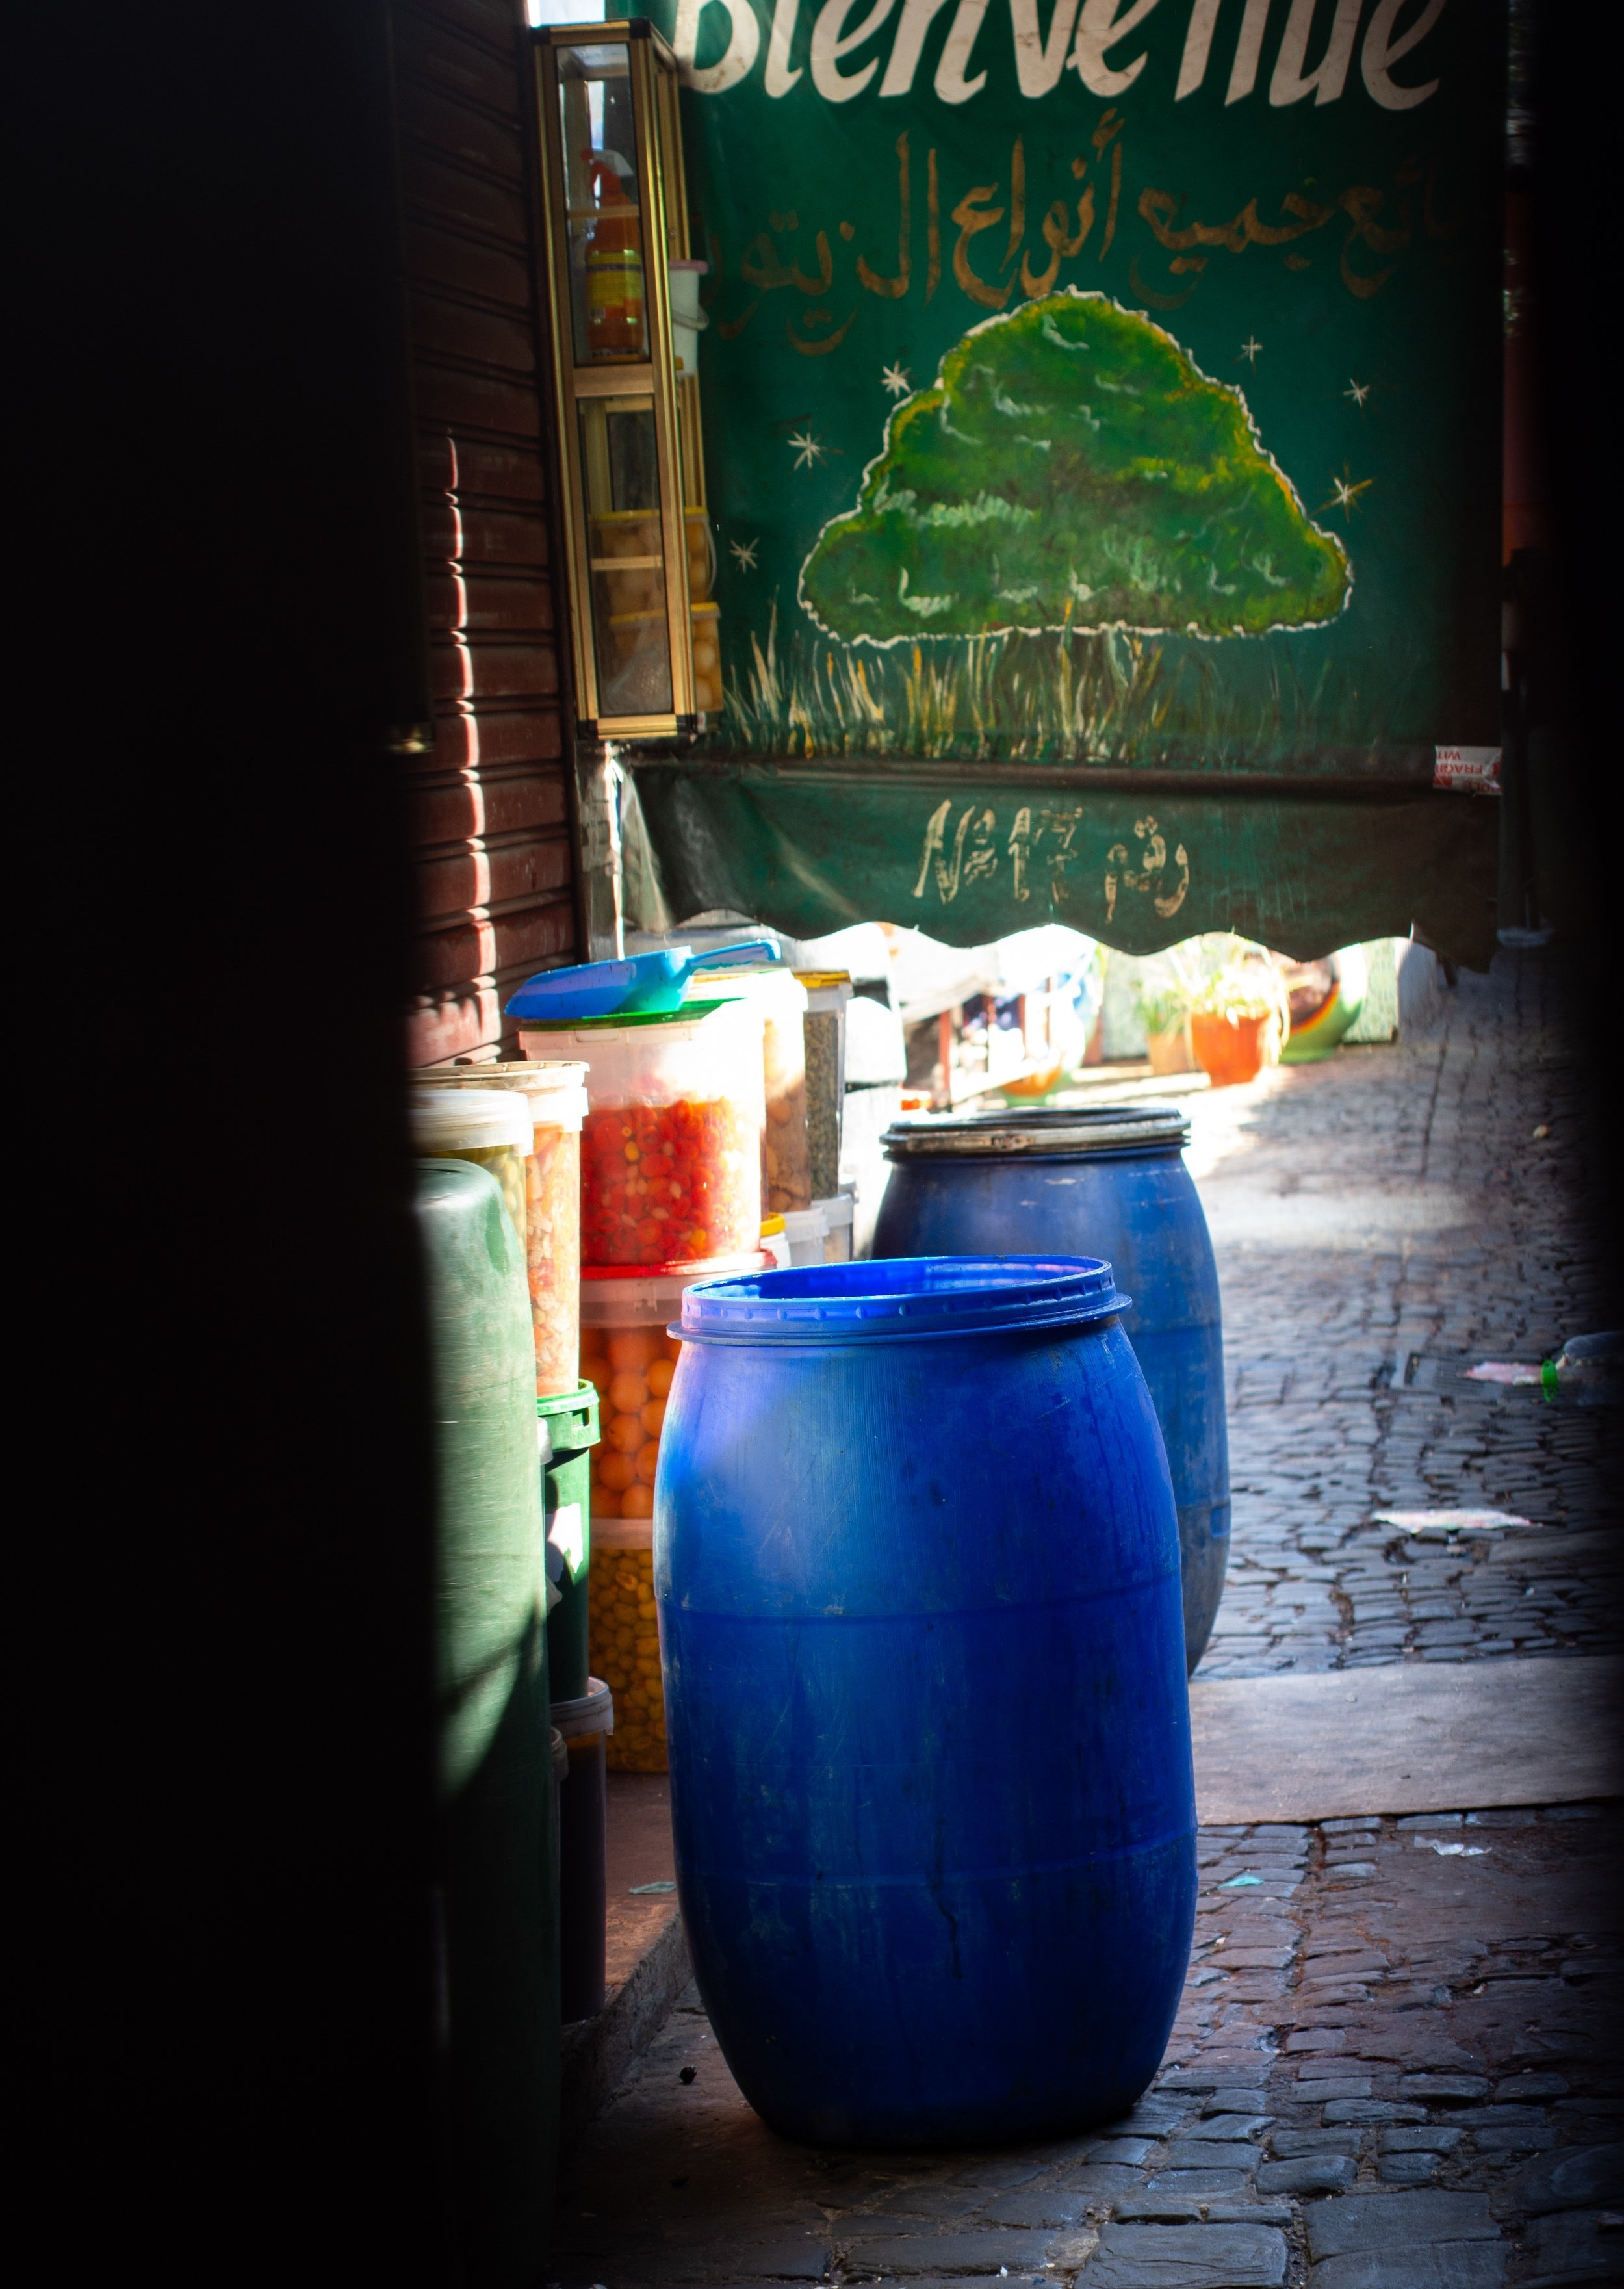 The end of the day; unattended barrels and containers seen through the cracks of the wooden doors of the Great Olive Market, a welcome sign hangs behind them